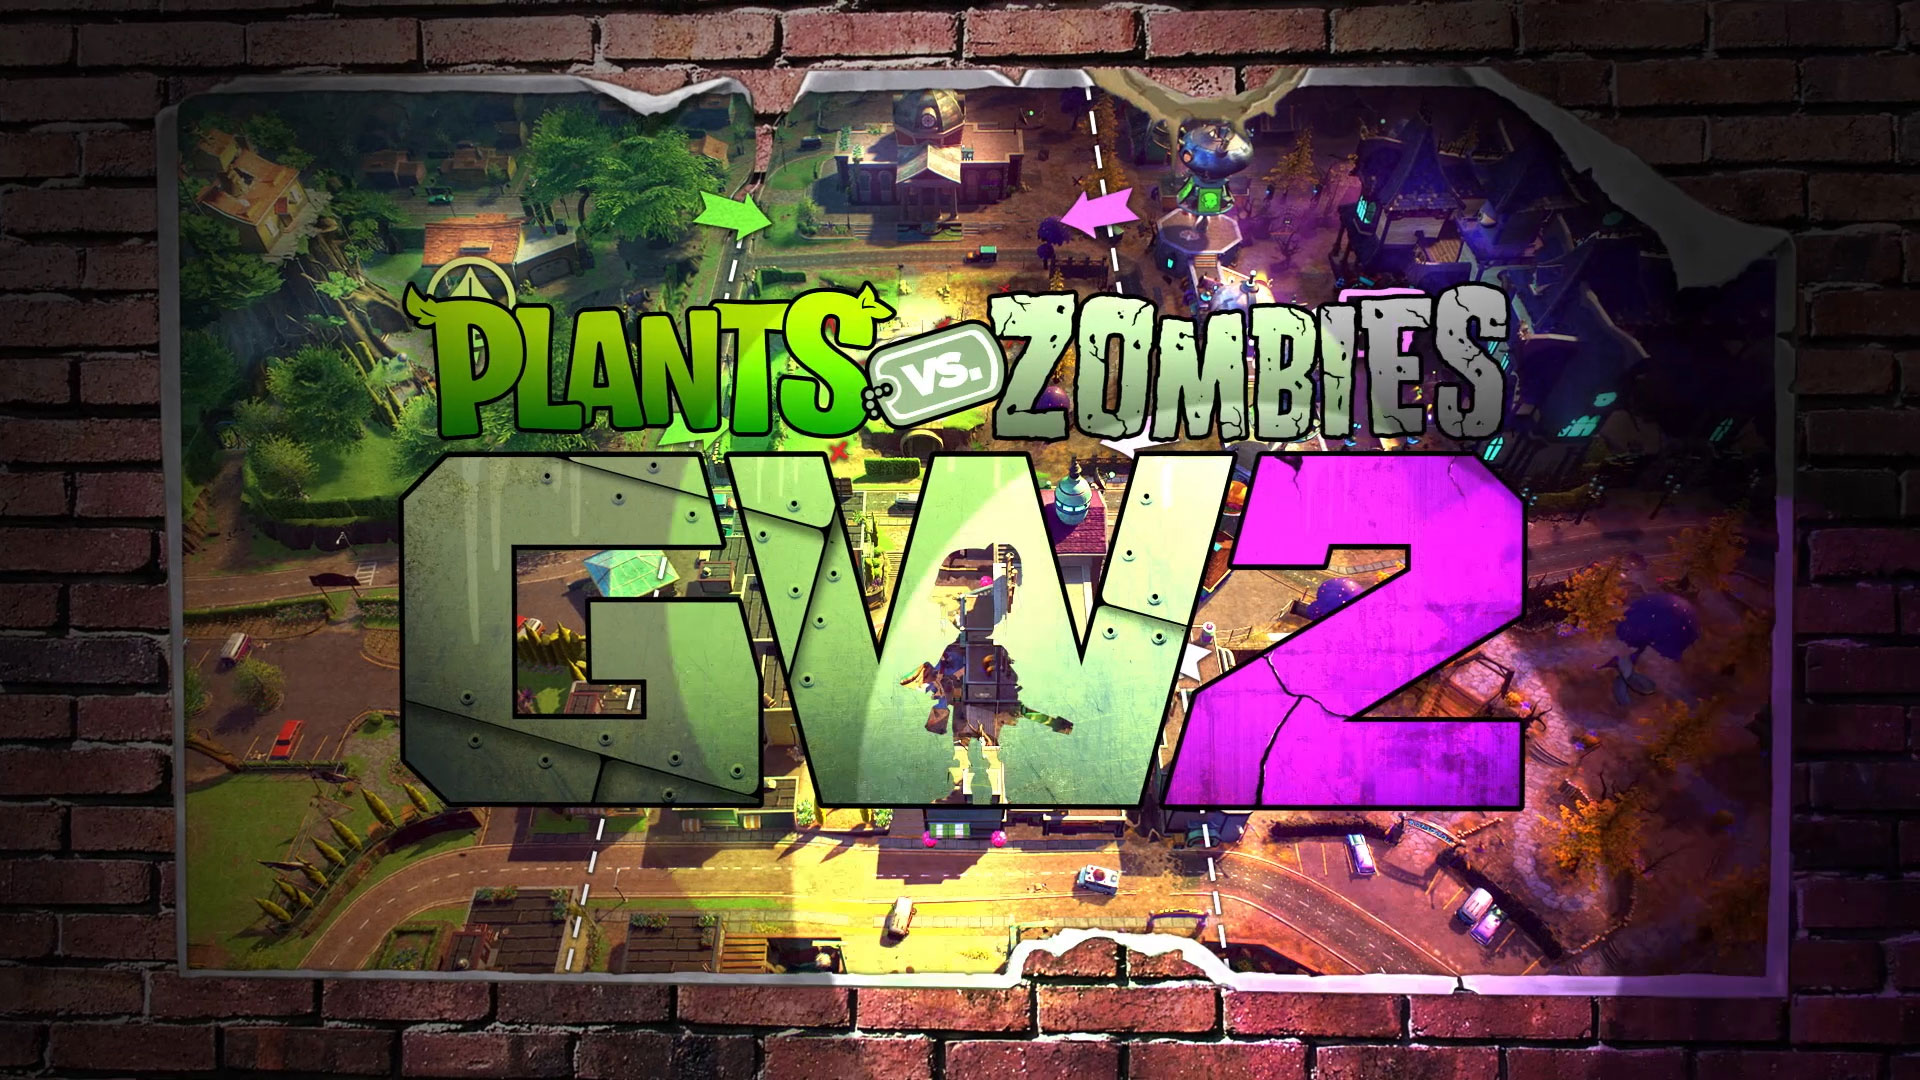 image - gw2 wallpaper | plants vs. zombies wiki | fandom powered